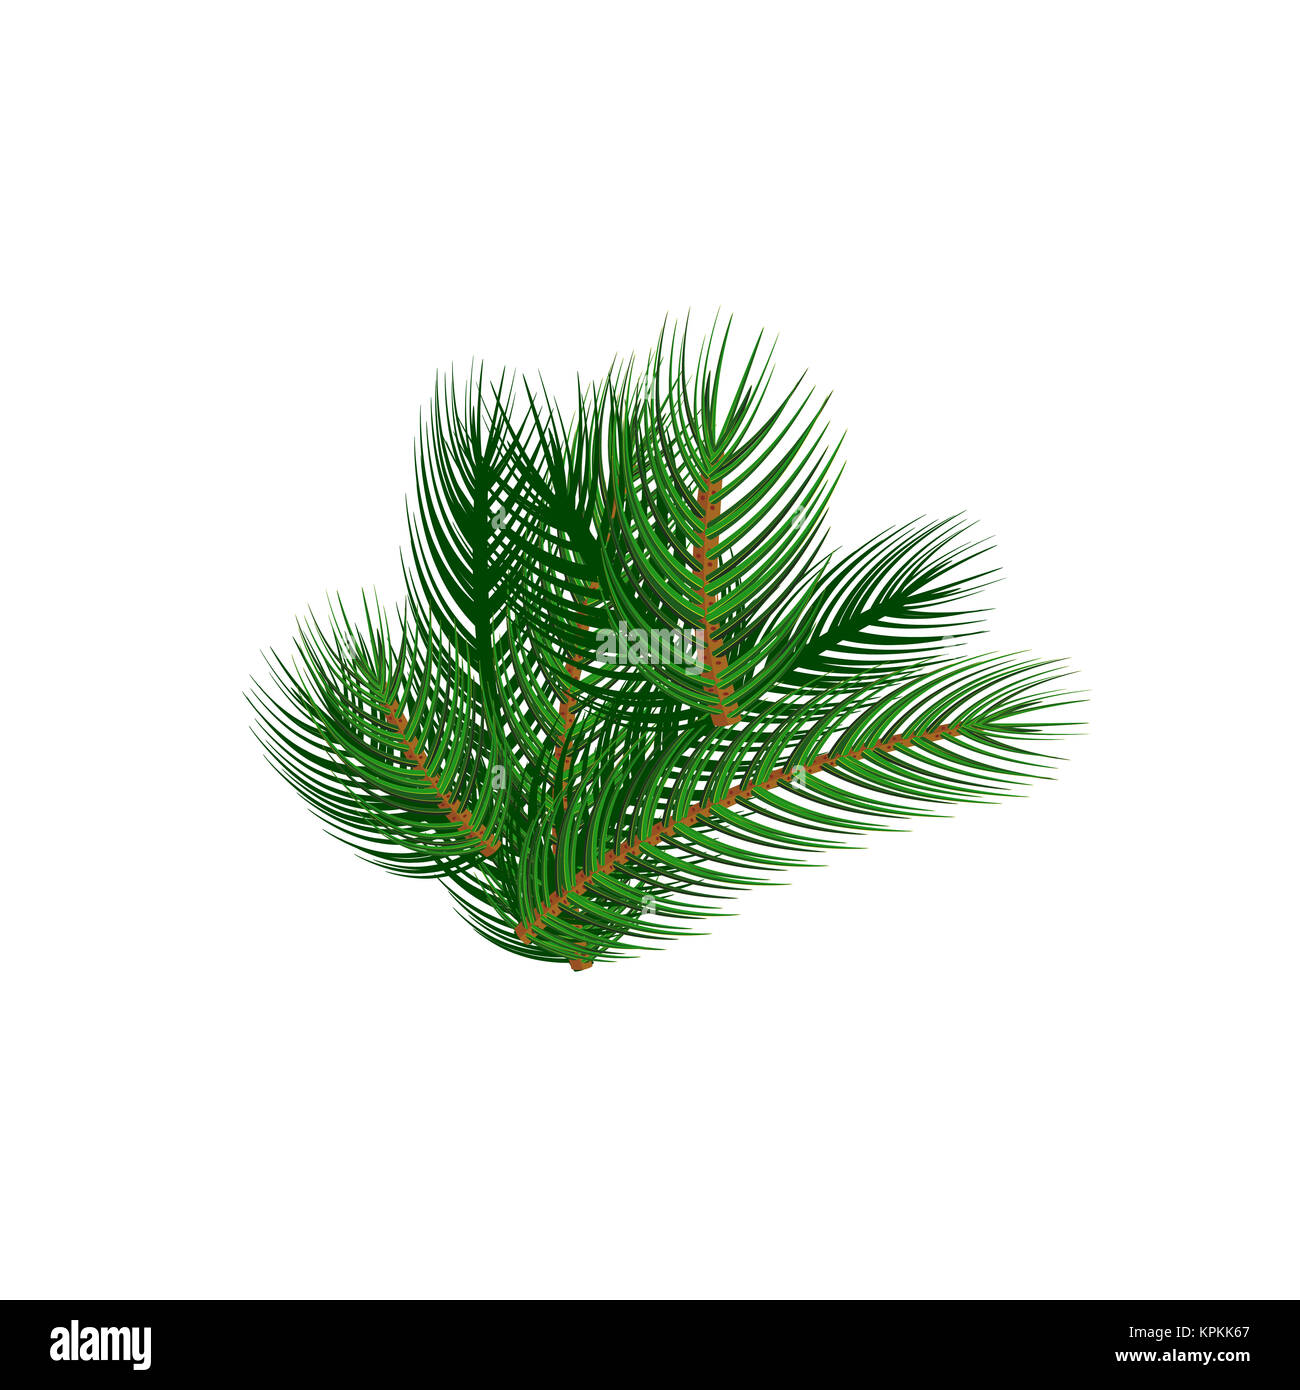 Spruce Branch as an Element of New Year's Decor. Green Fir Twig Isolated on White Background. - Stock Image